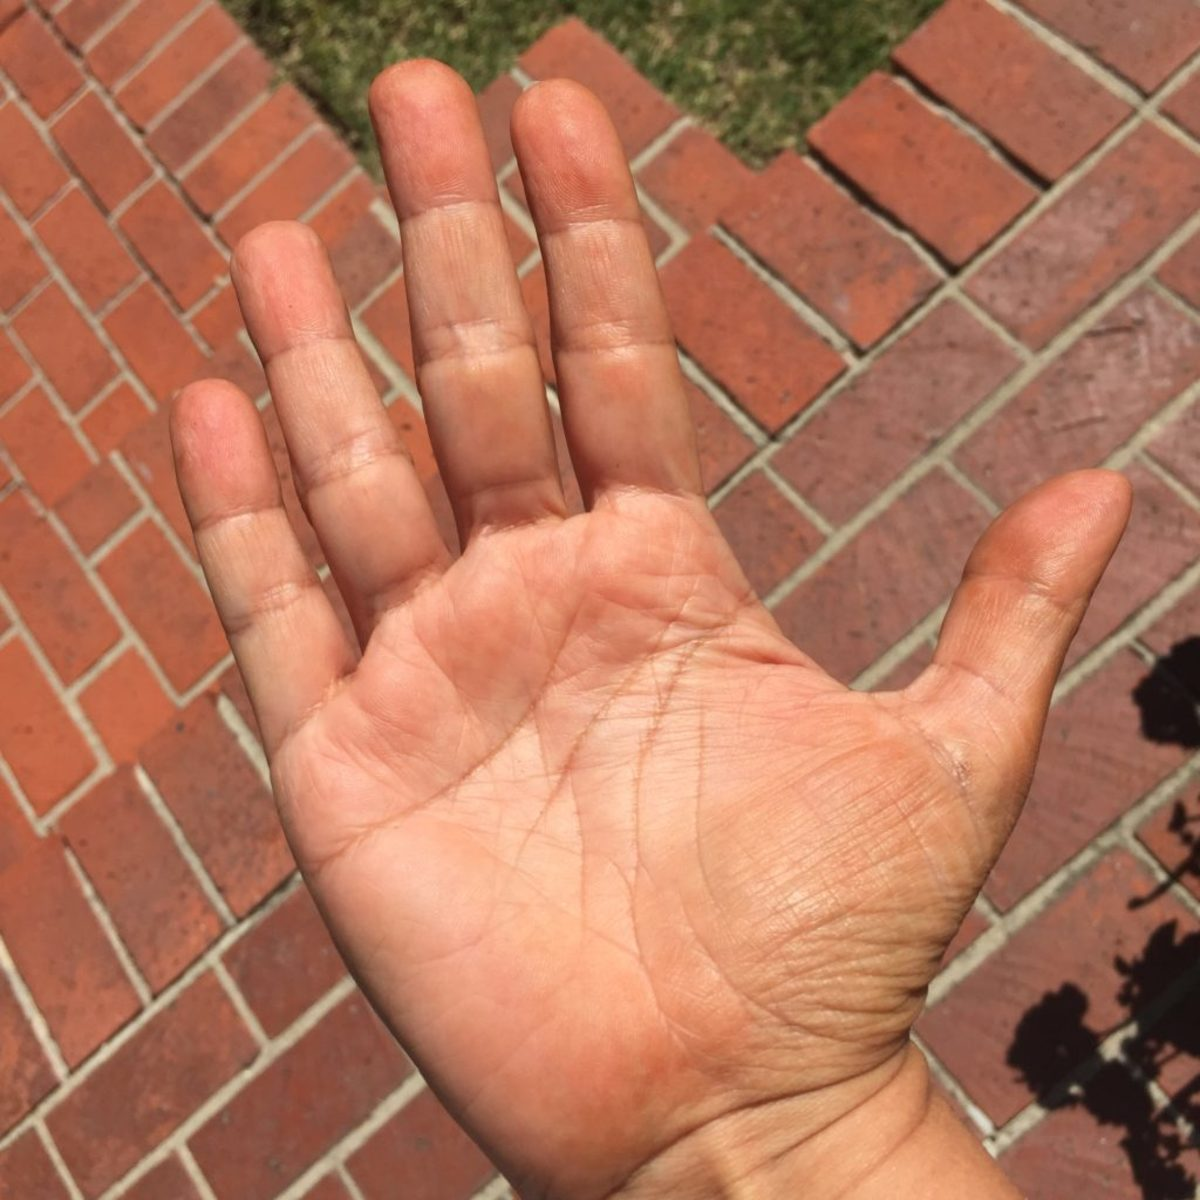 Wash your hands right after you've applied tanning spray or lotion.